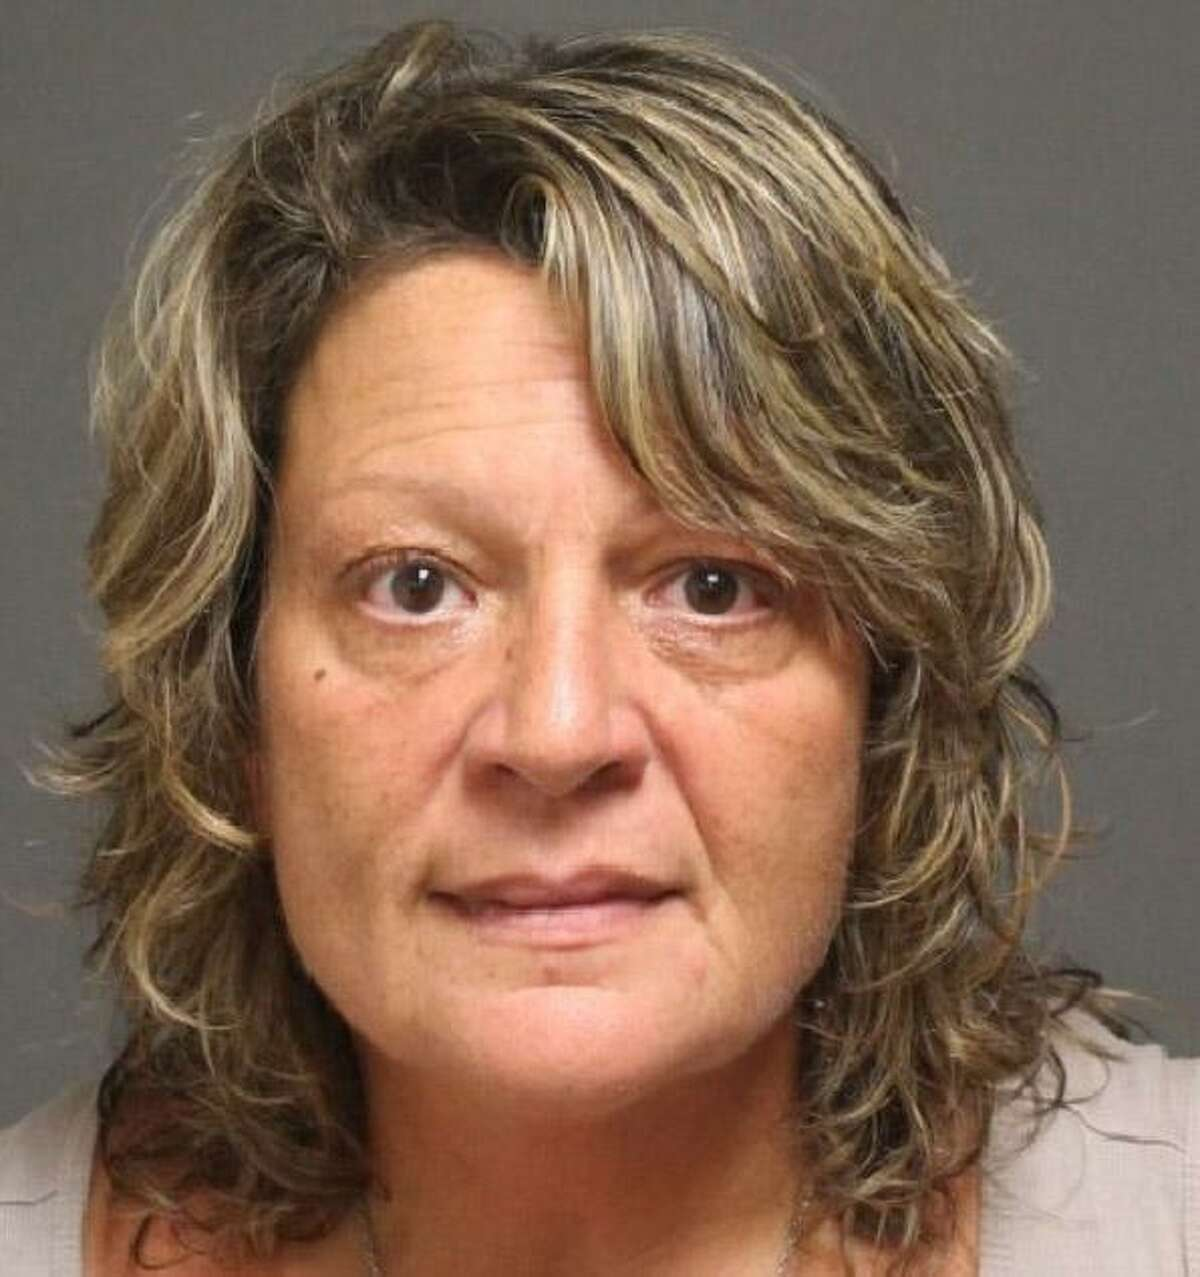 Carol Cardillo, 54, of Edgewood Road, has been charged with manslaughter in connection with the death of Adam Seagull, an infant at an illegal home daycare center she ran at her home. Fairfield, CT. 9/8/16